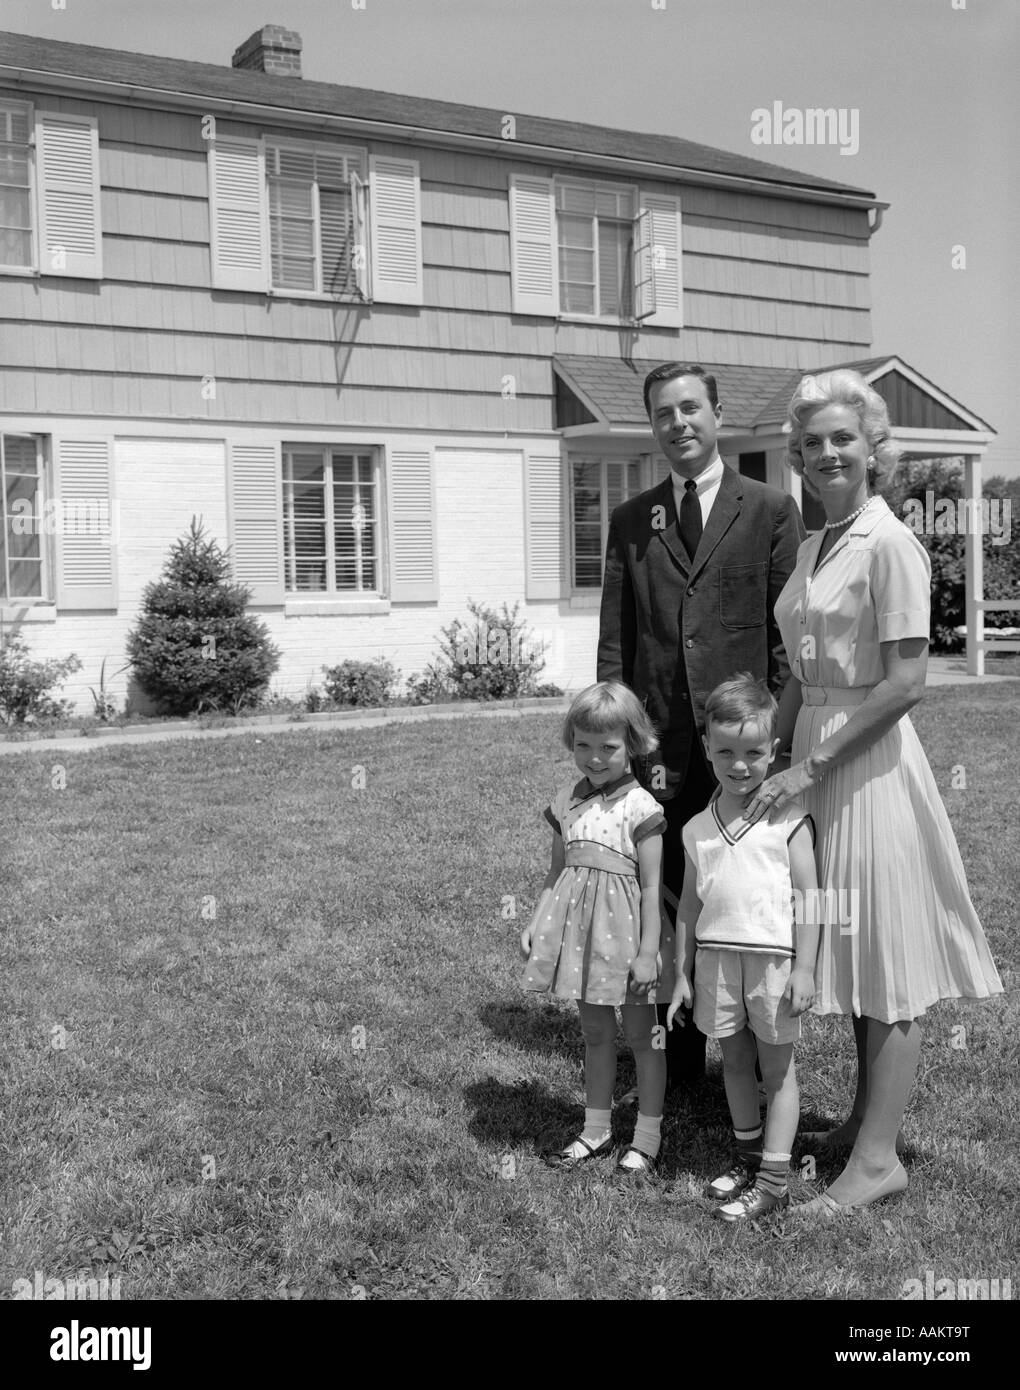 1960s FAMILY PORTRAIT STANDING BY SUBURBAN HOUSE - Stock Image